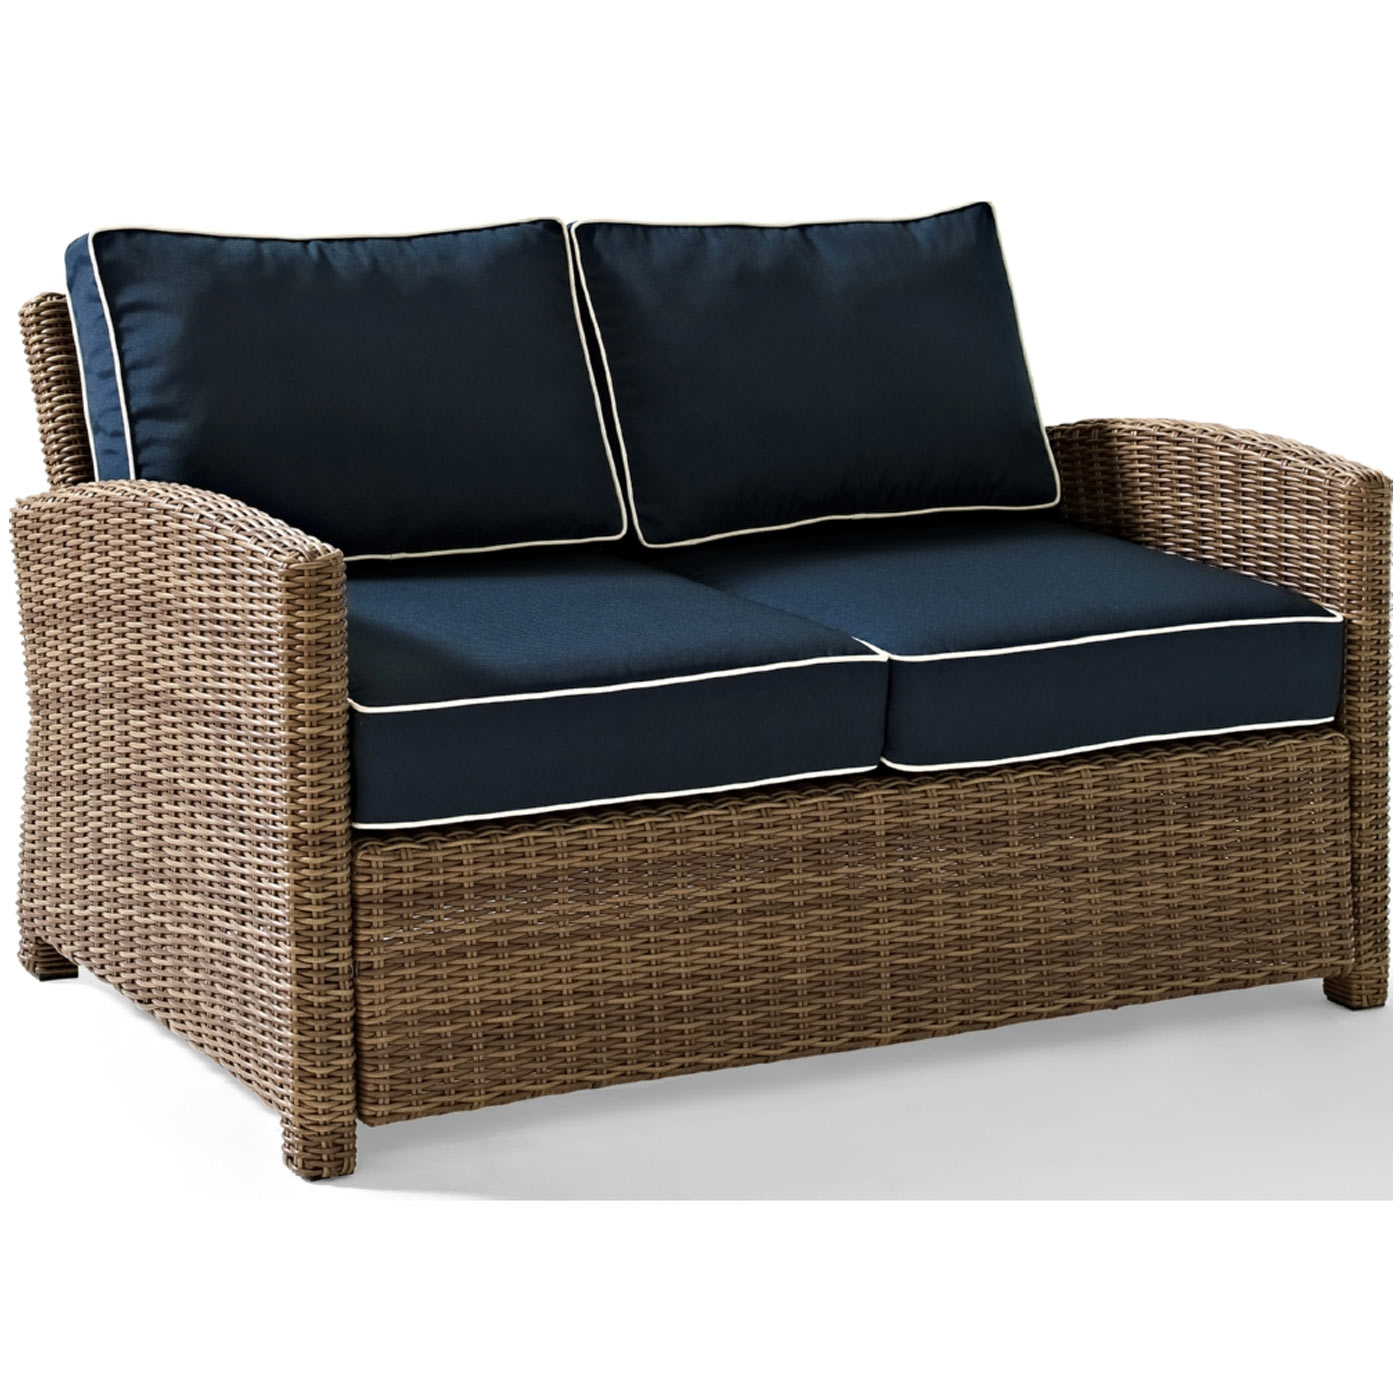 crosley biltmore outdoor wicker loveseat with cushions. Black Bedroom Furniture Sets. Home Design Ideas